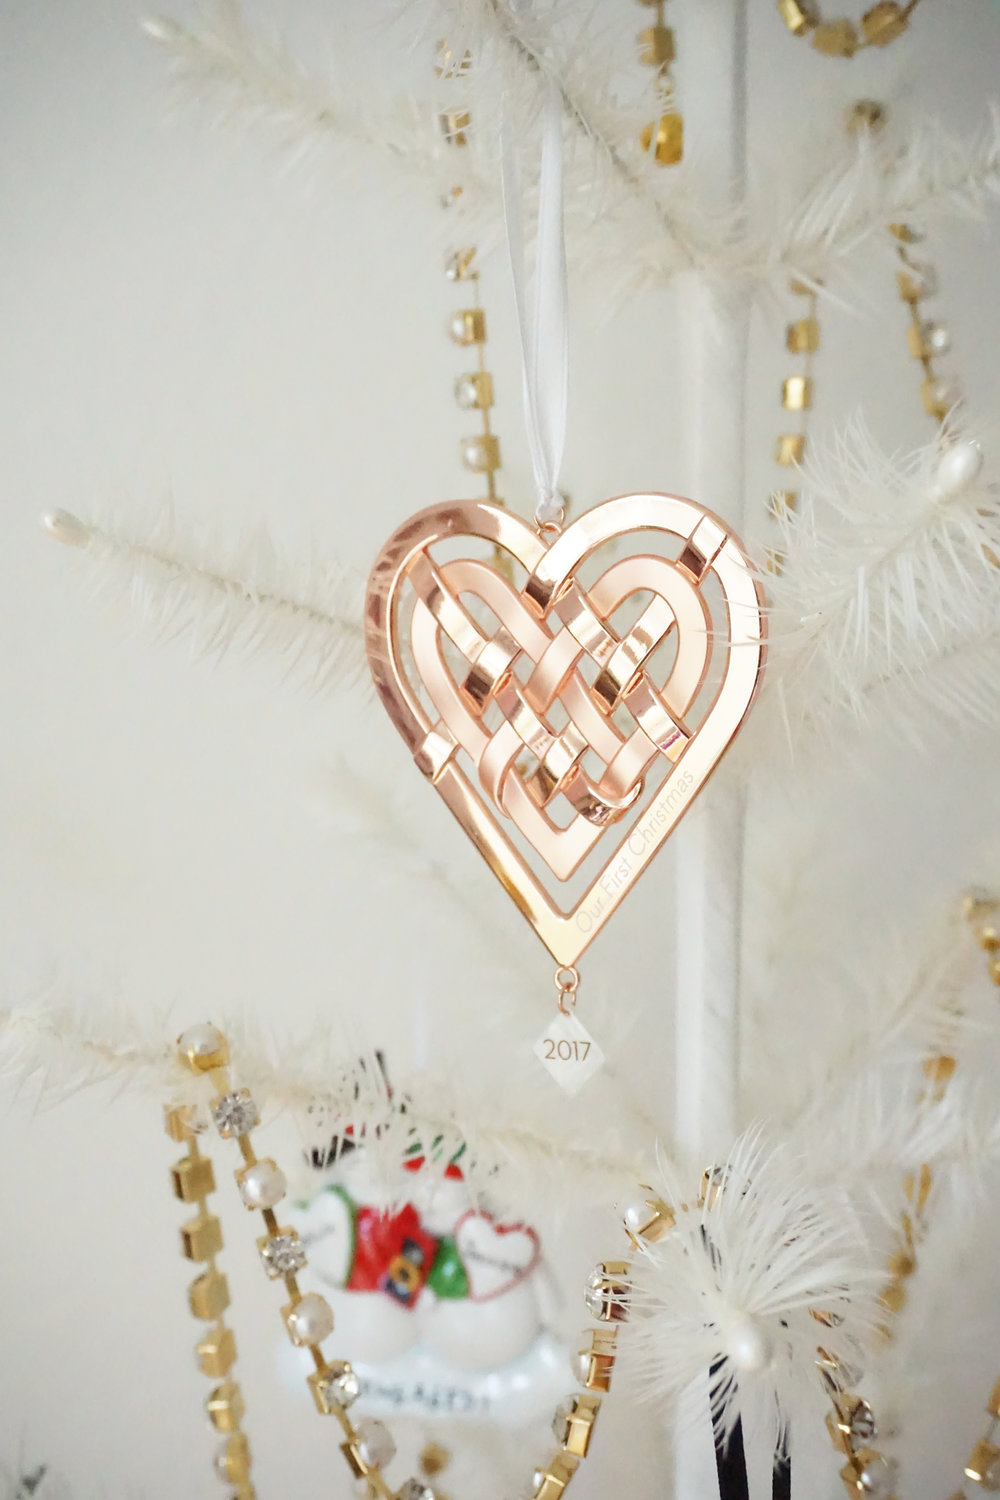 our-first-christmas-2017-ornament.jpg